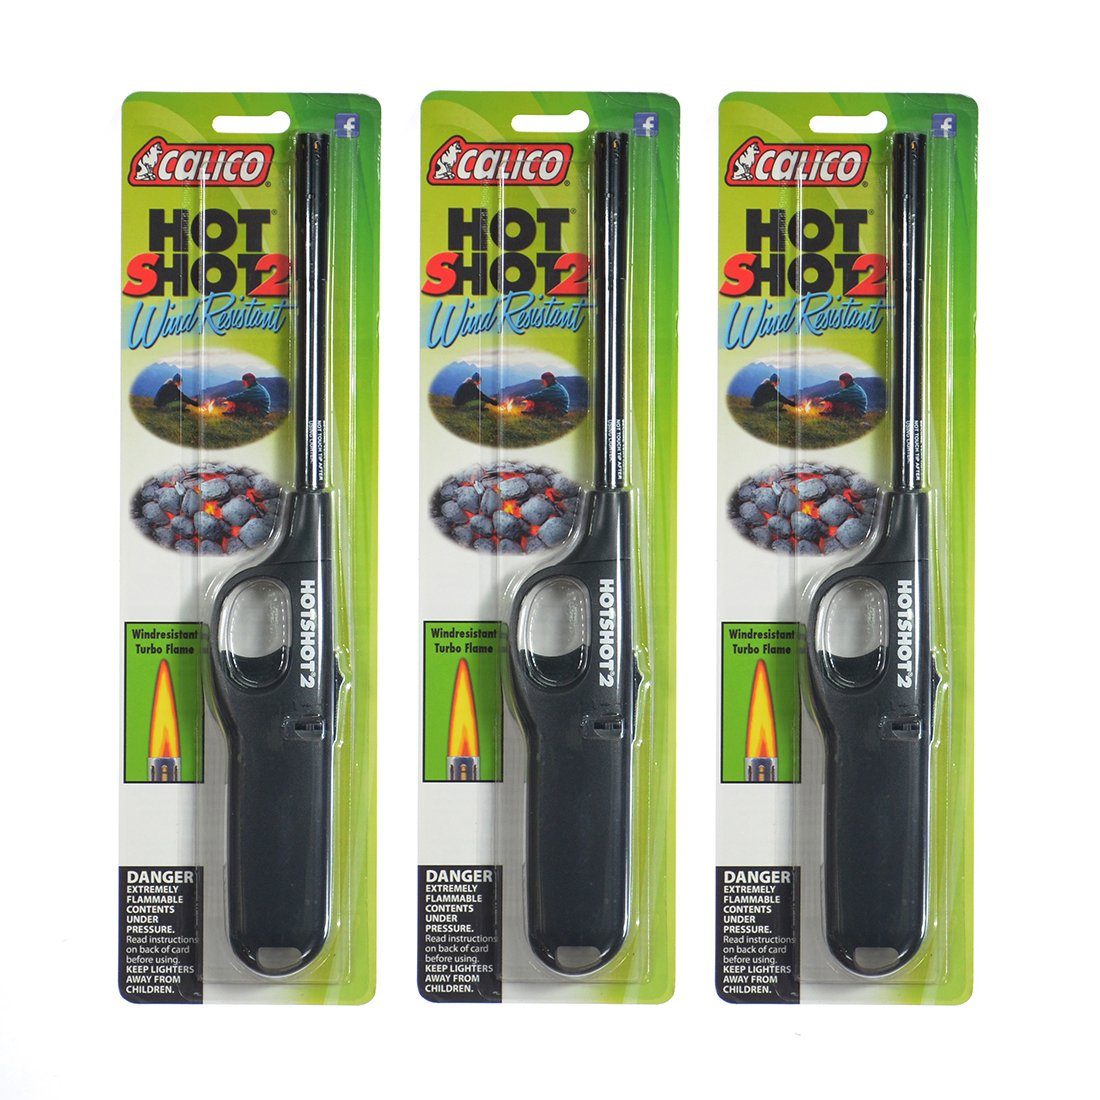 3 pack of Calico HOT SHOT 2 Wind Resistant Lighters